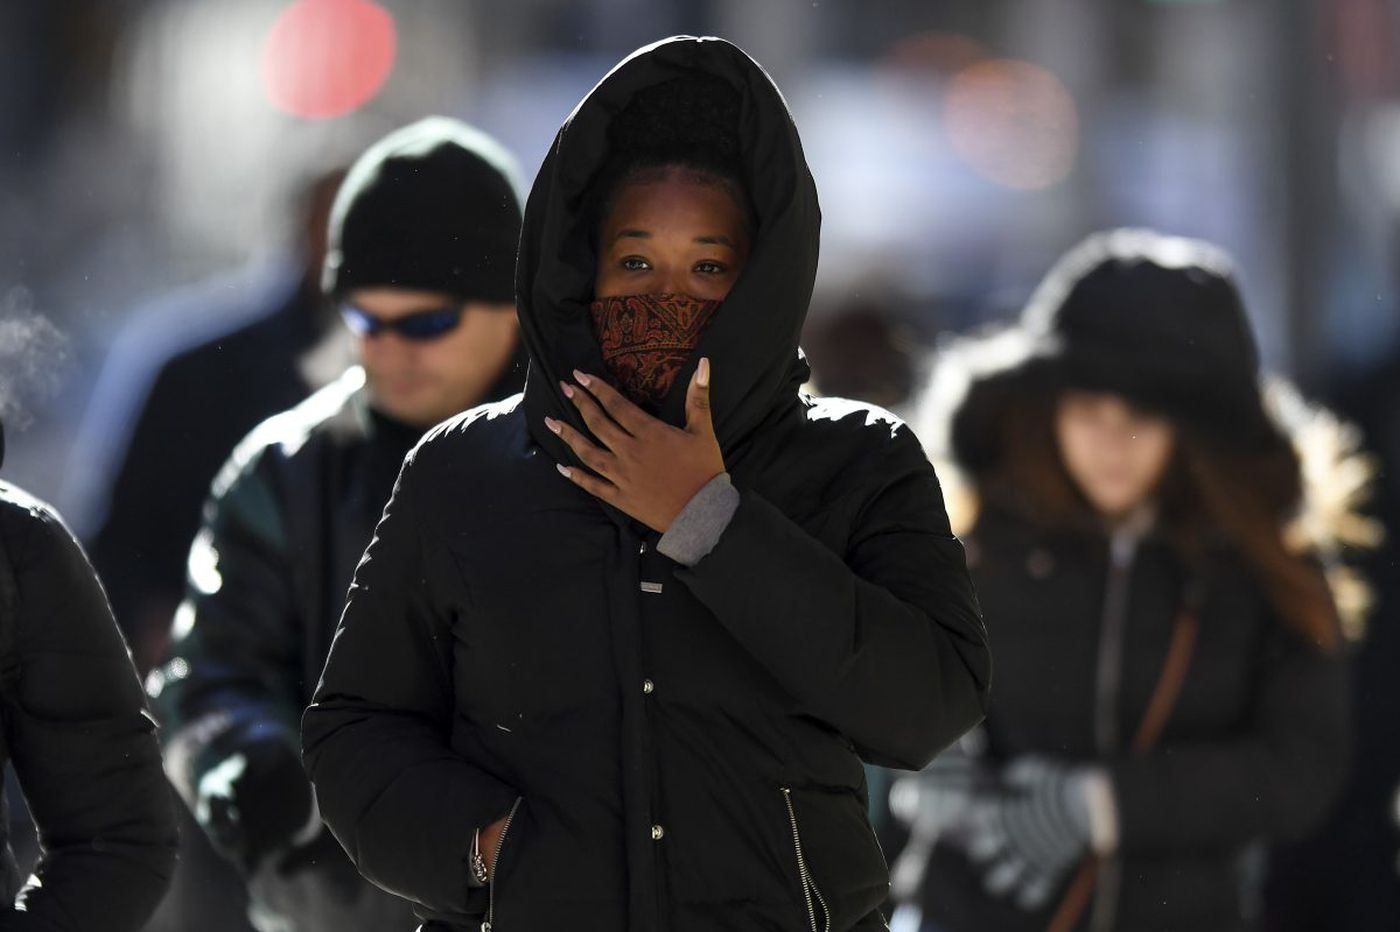 Snow in forecast as deep freeze maintains grip on Philly area